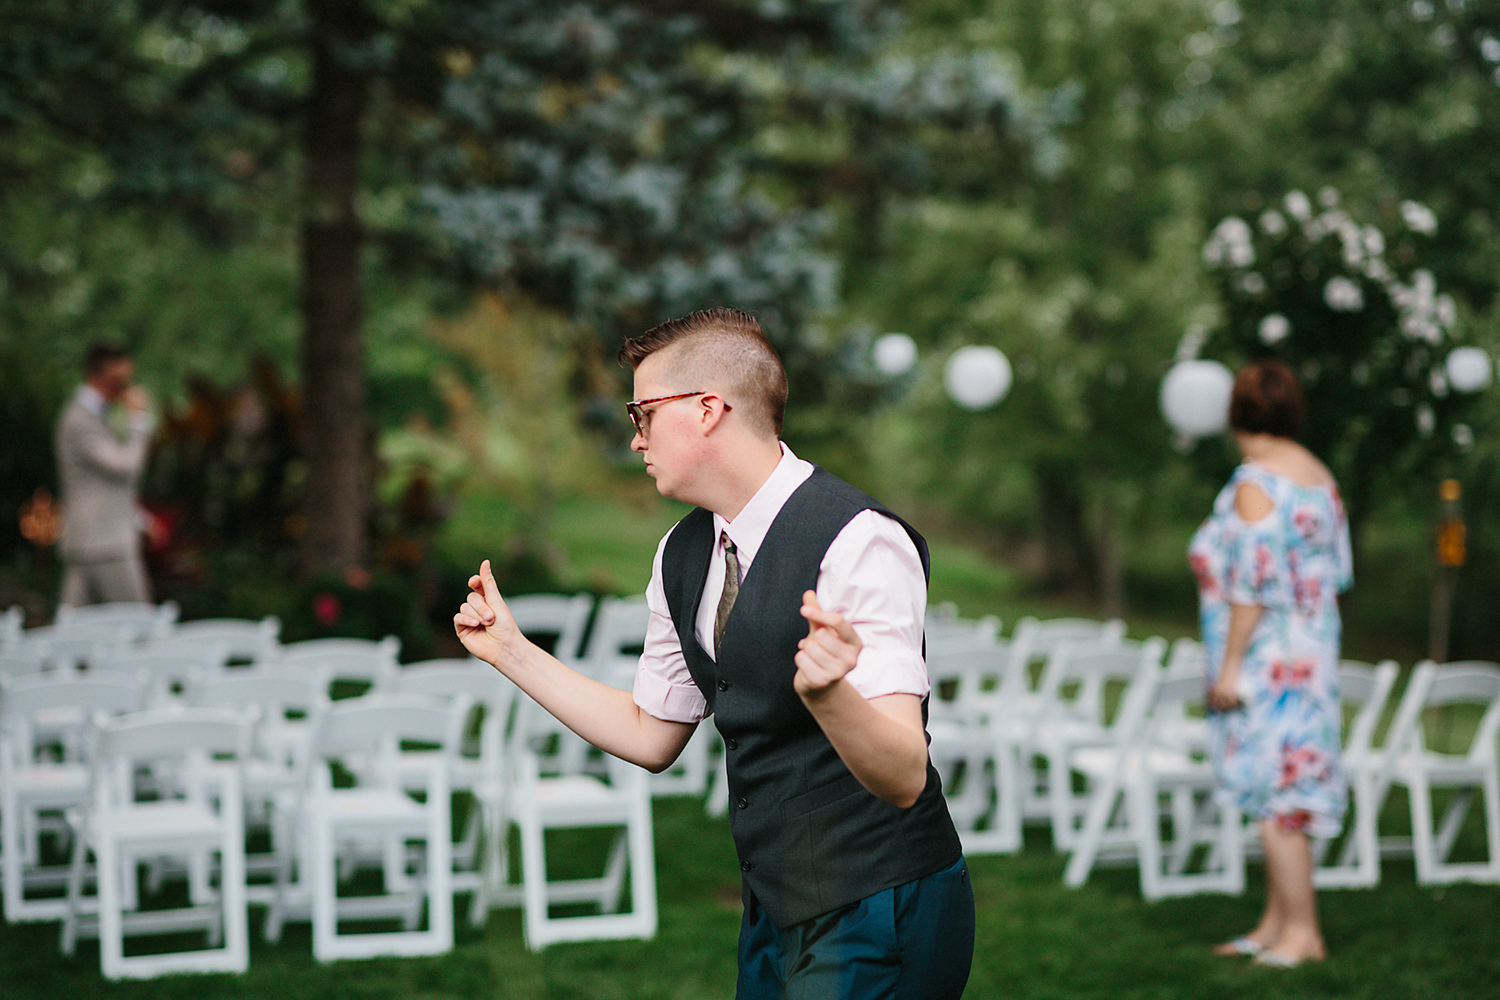 Backyard-family-intimate-cottage-wedding-chatum-kent-toronto-ontario-film-photographer-ryanne-hollies-photography-diy-string-lights-ceremony-space-lanterns-guests-dancing.jpg